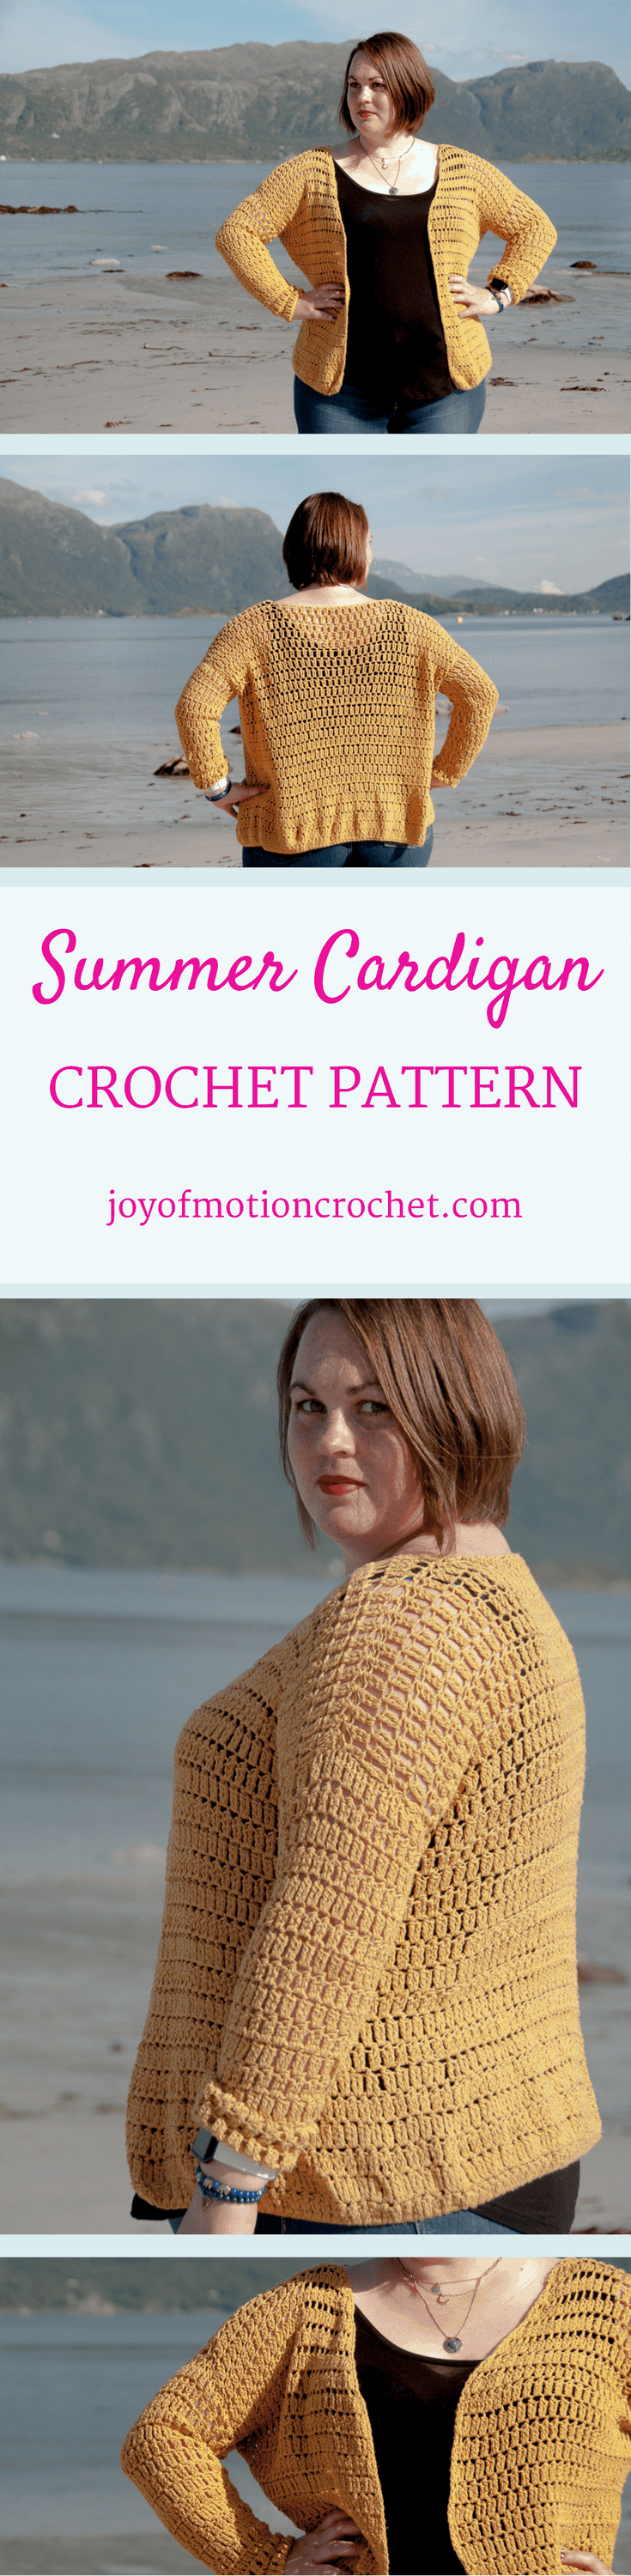 The Summer Cardigan a crochet pattern. Woman's cardigan crochet pattern with skill level easy. Make this fashionable crochet cardigan with you own hook & yarn. Cardigan crochet pattern easy for her . Crochet cardigan | woman's crochet cardigan | crochet pattern for her | fashionable crochet cardigan | interesting crochet cardigan | click to learn more or repin to save it forever.